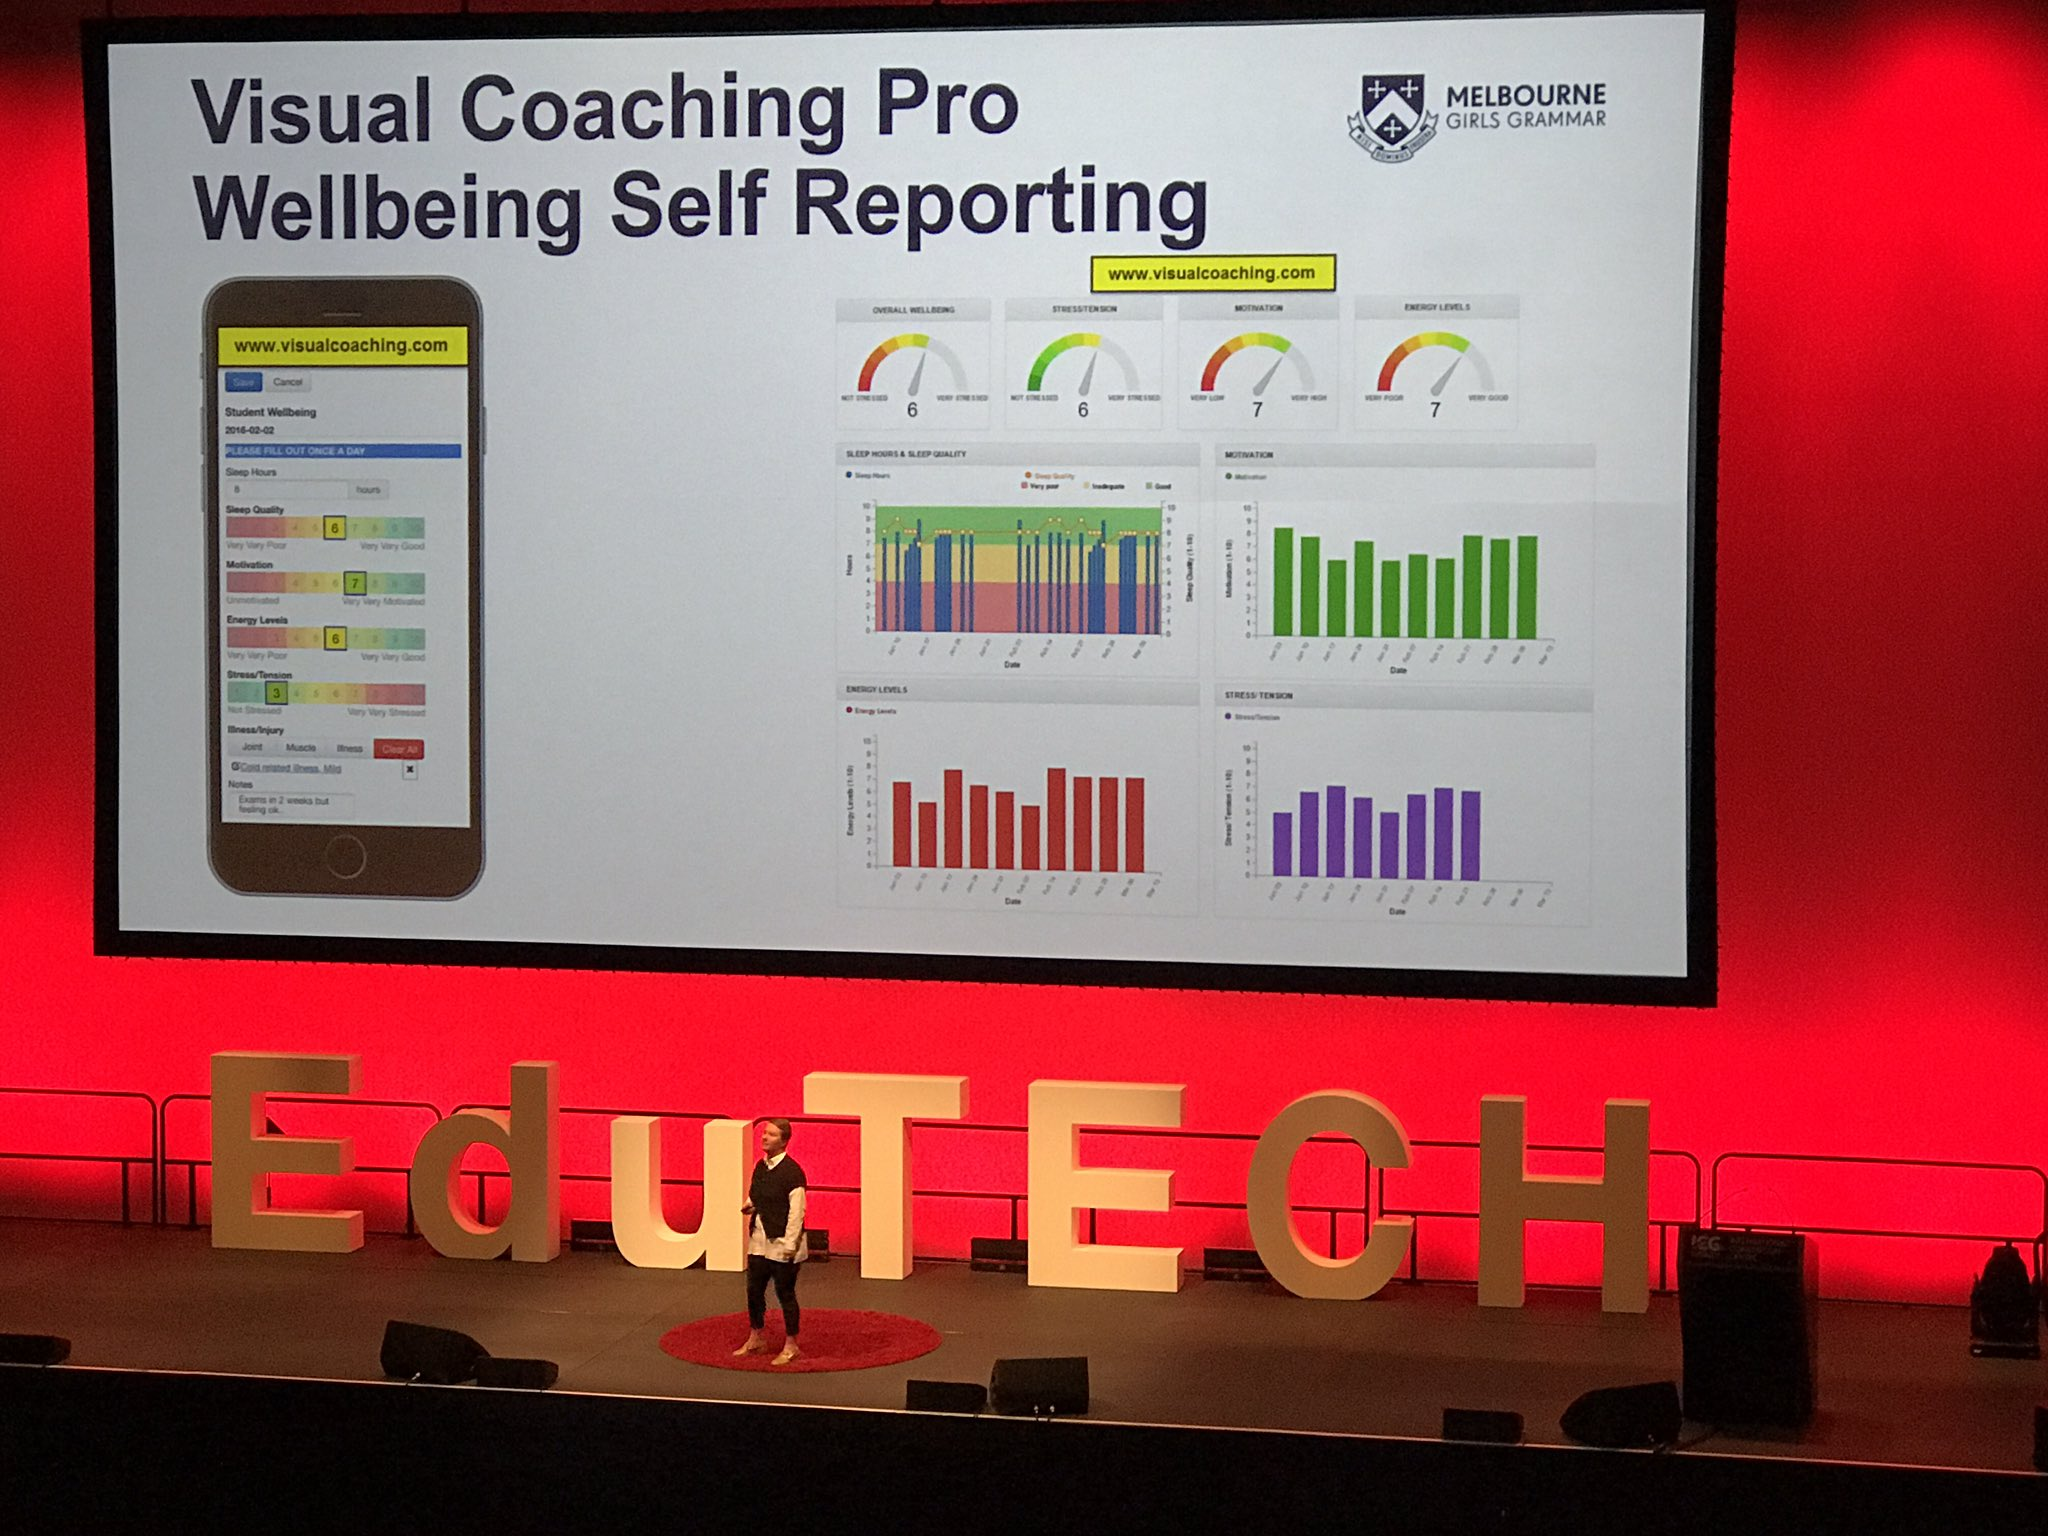 Looks like it could be a good tool for wellbeing self-reflection. #EduTechau https://t.co/yndgv9WKJB